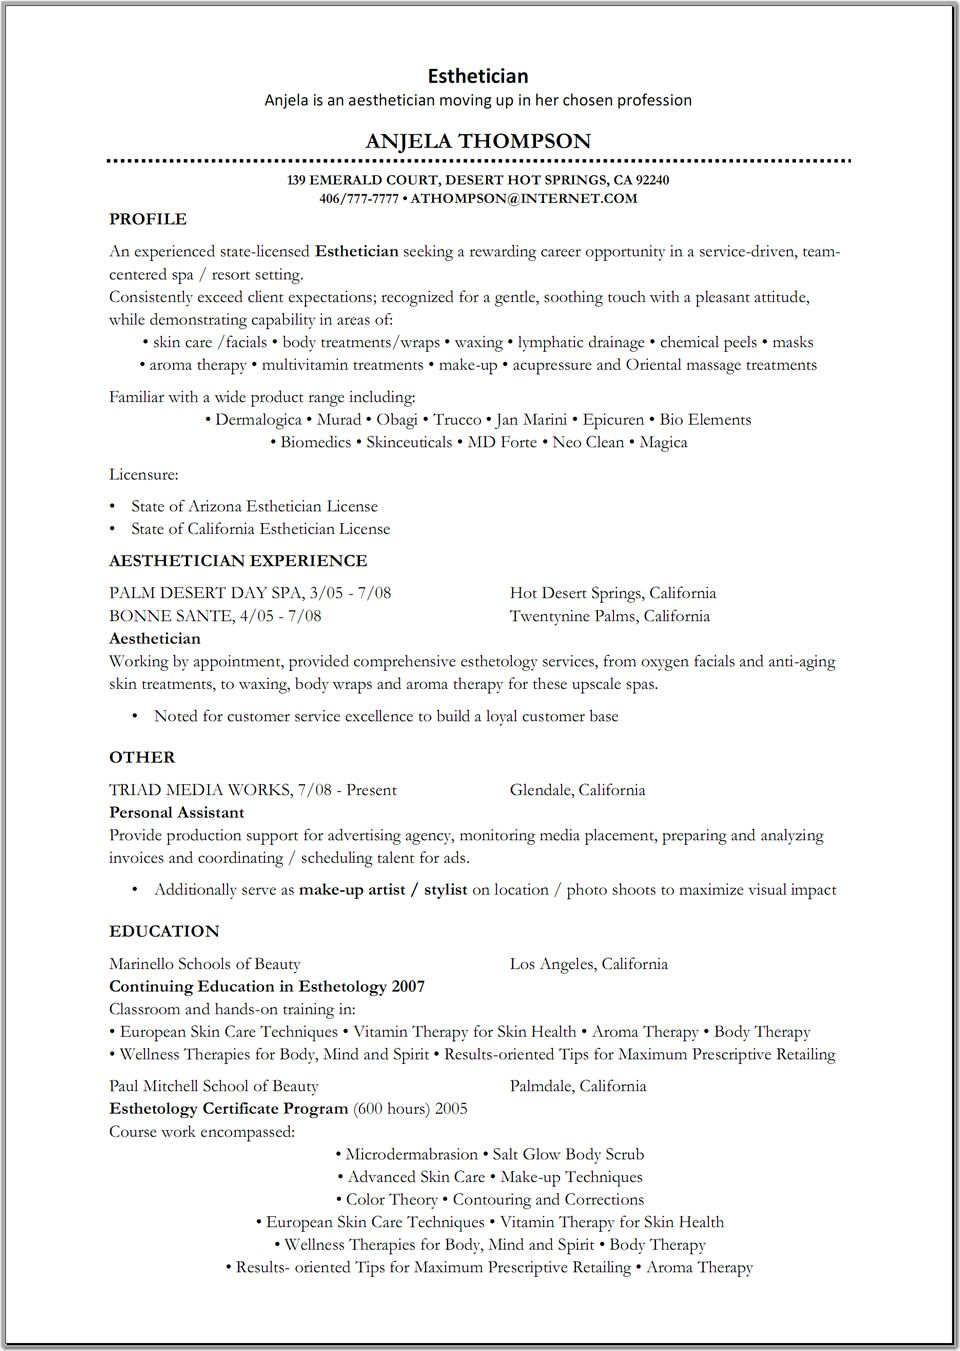 Beautiful Esthetician Resume Sample   Http://www.resumecareer.info/esthetician Resume  Sample 3/